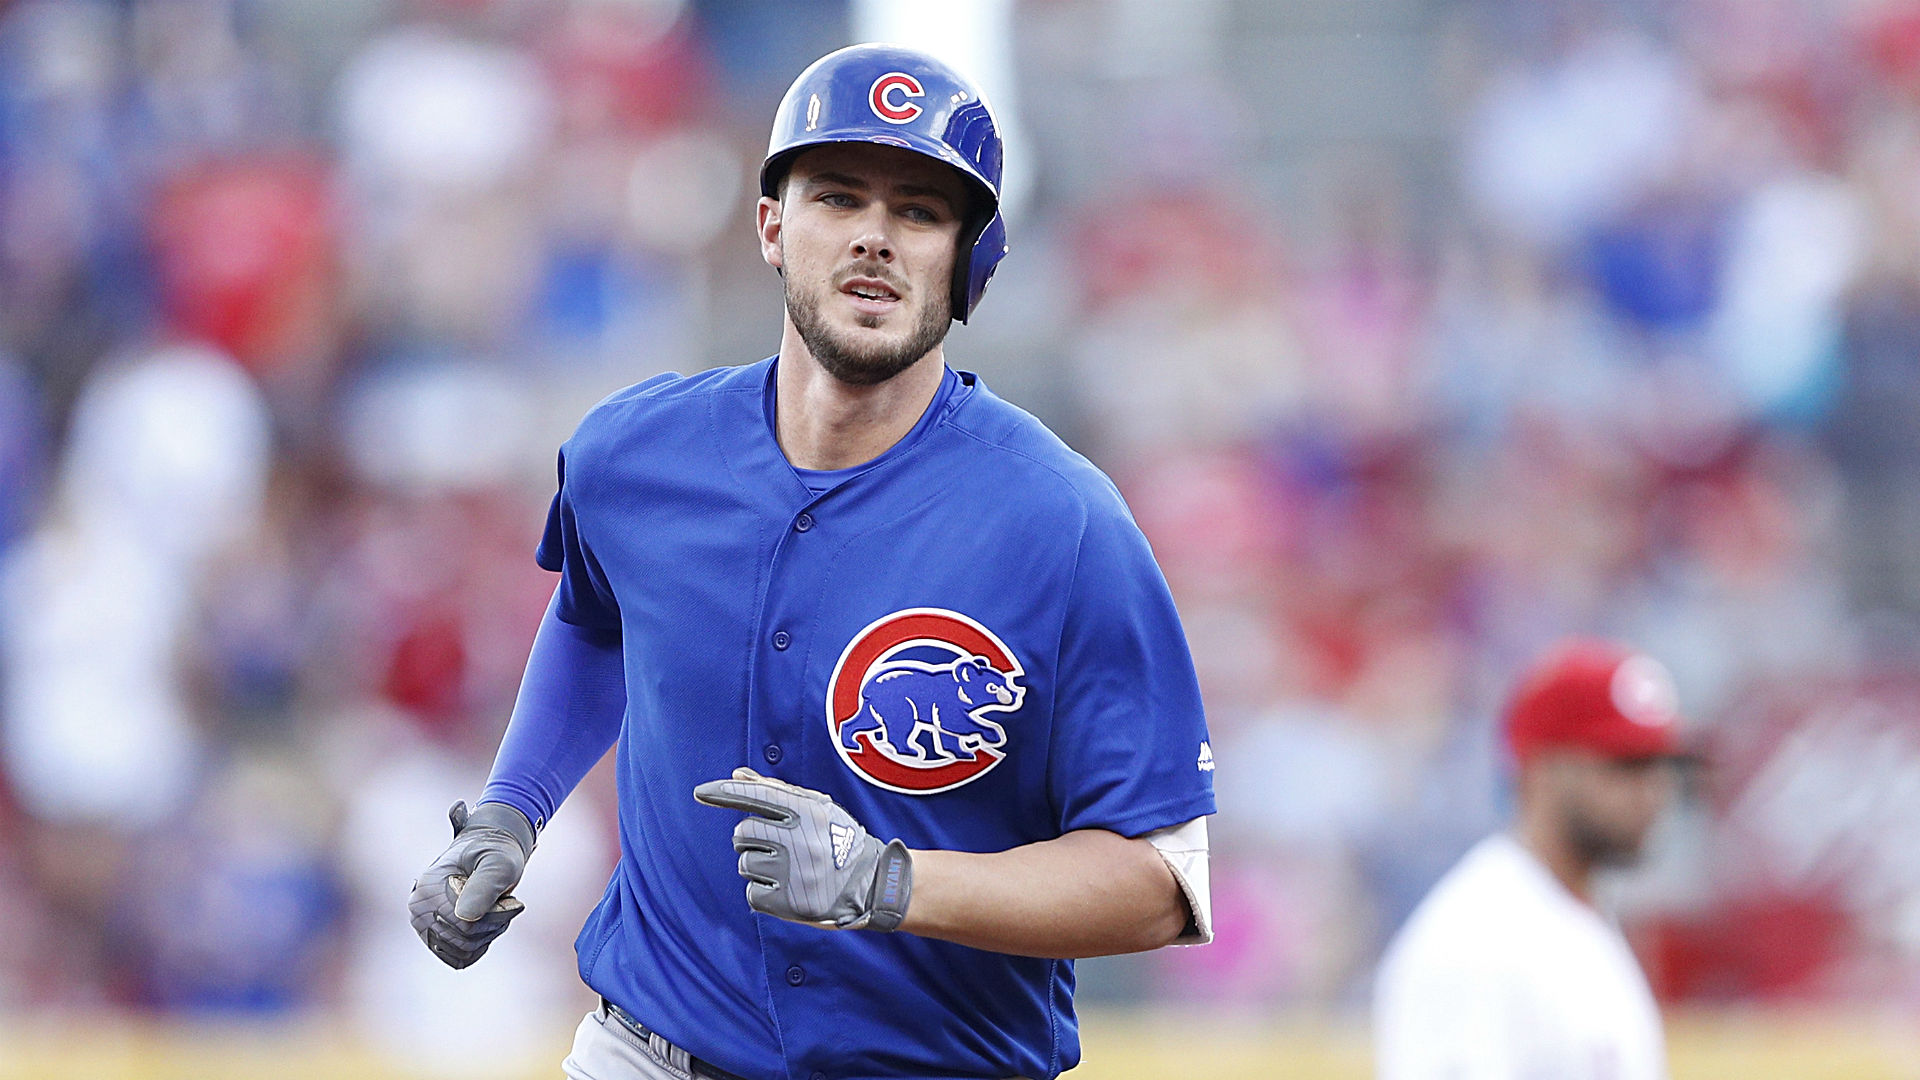 Other Kris Bryant's favorite jersey isn't the Cubs' SPORTAL